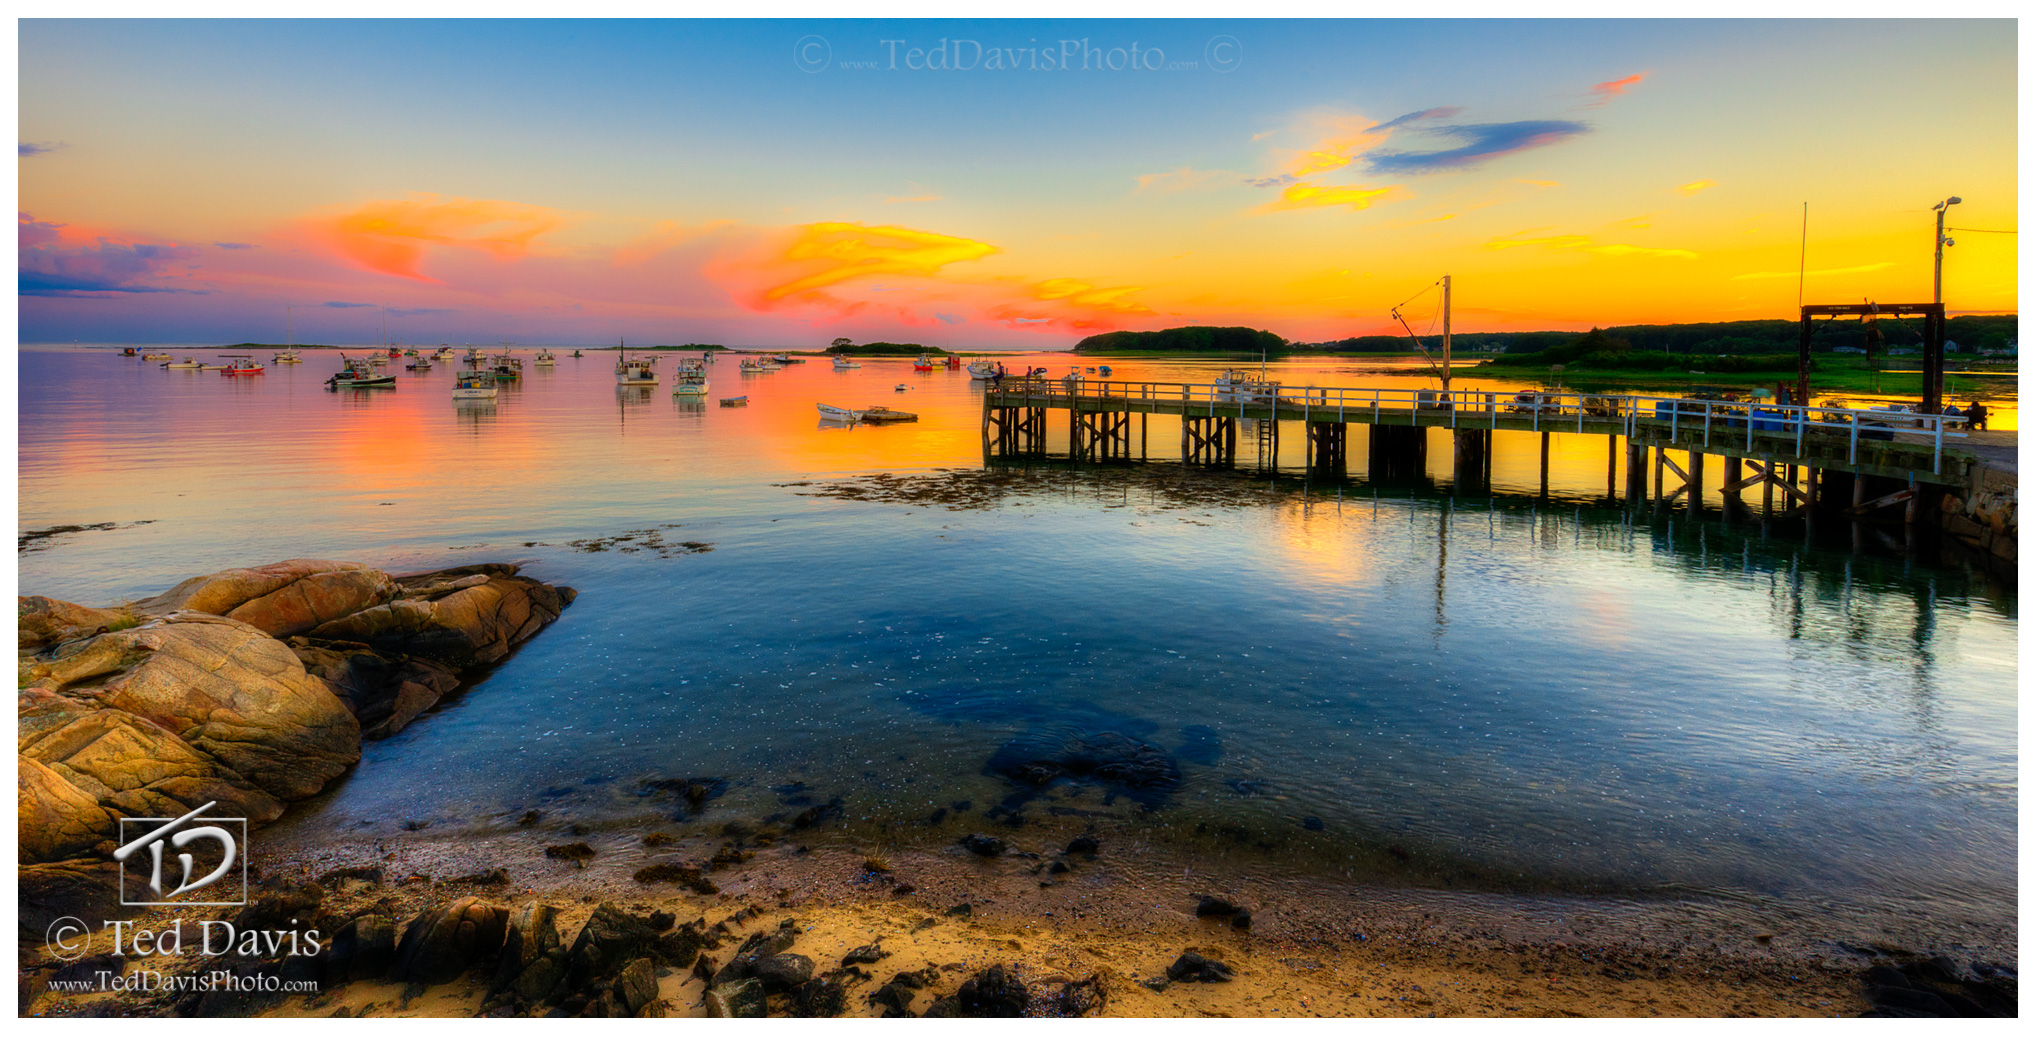 Cape Porpoise, pier, ocean, sunset, harbor, photo